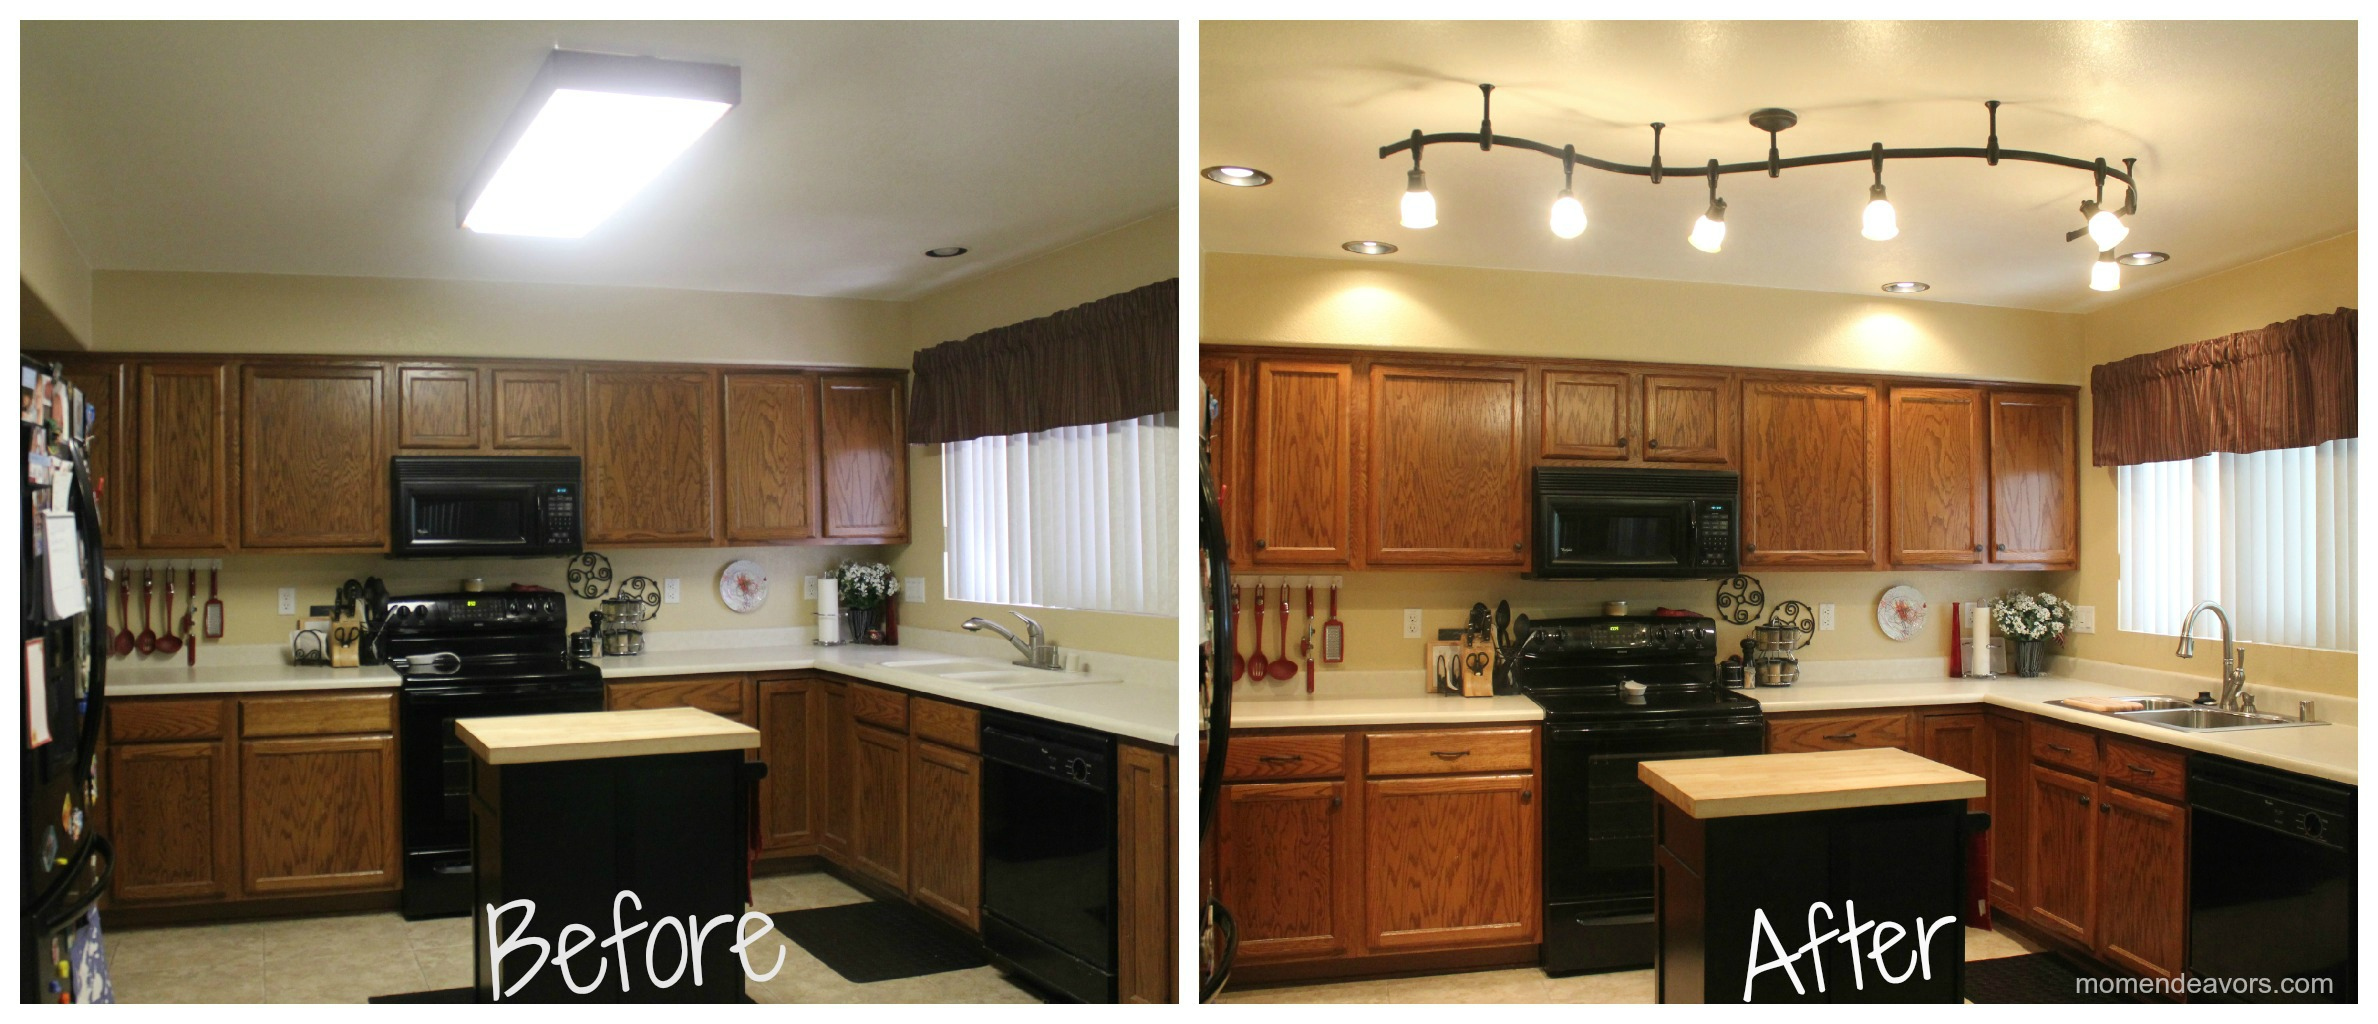 Mini kitchen remodel new lighting makes a world of for Kitchen redesign